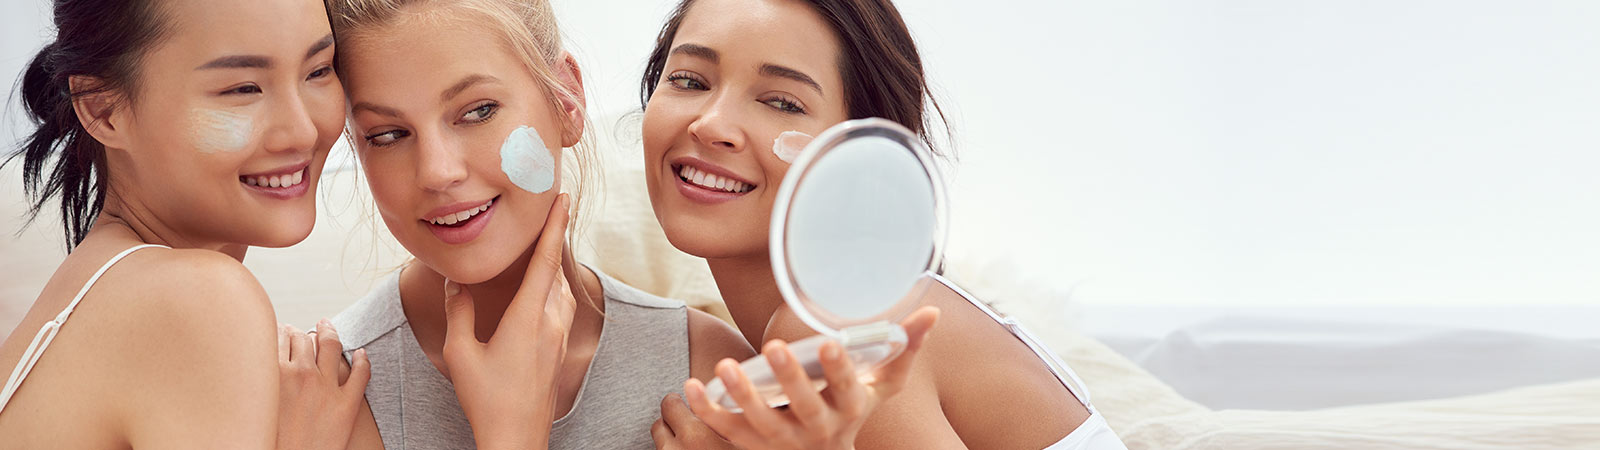 Dehydrated skin: what should I do?